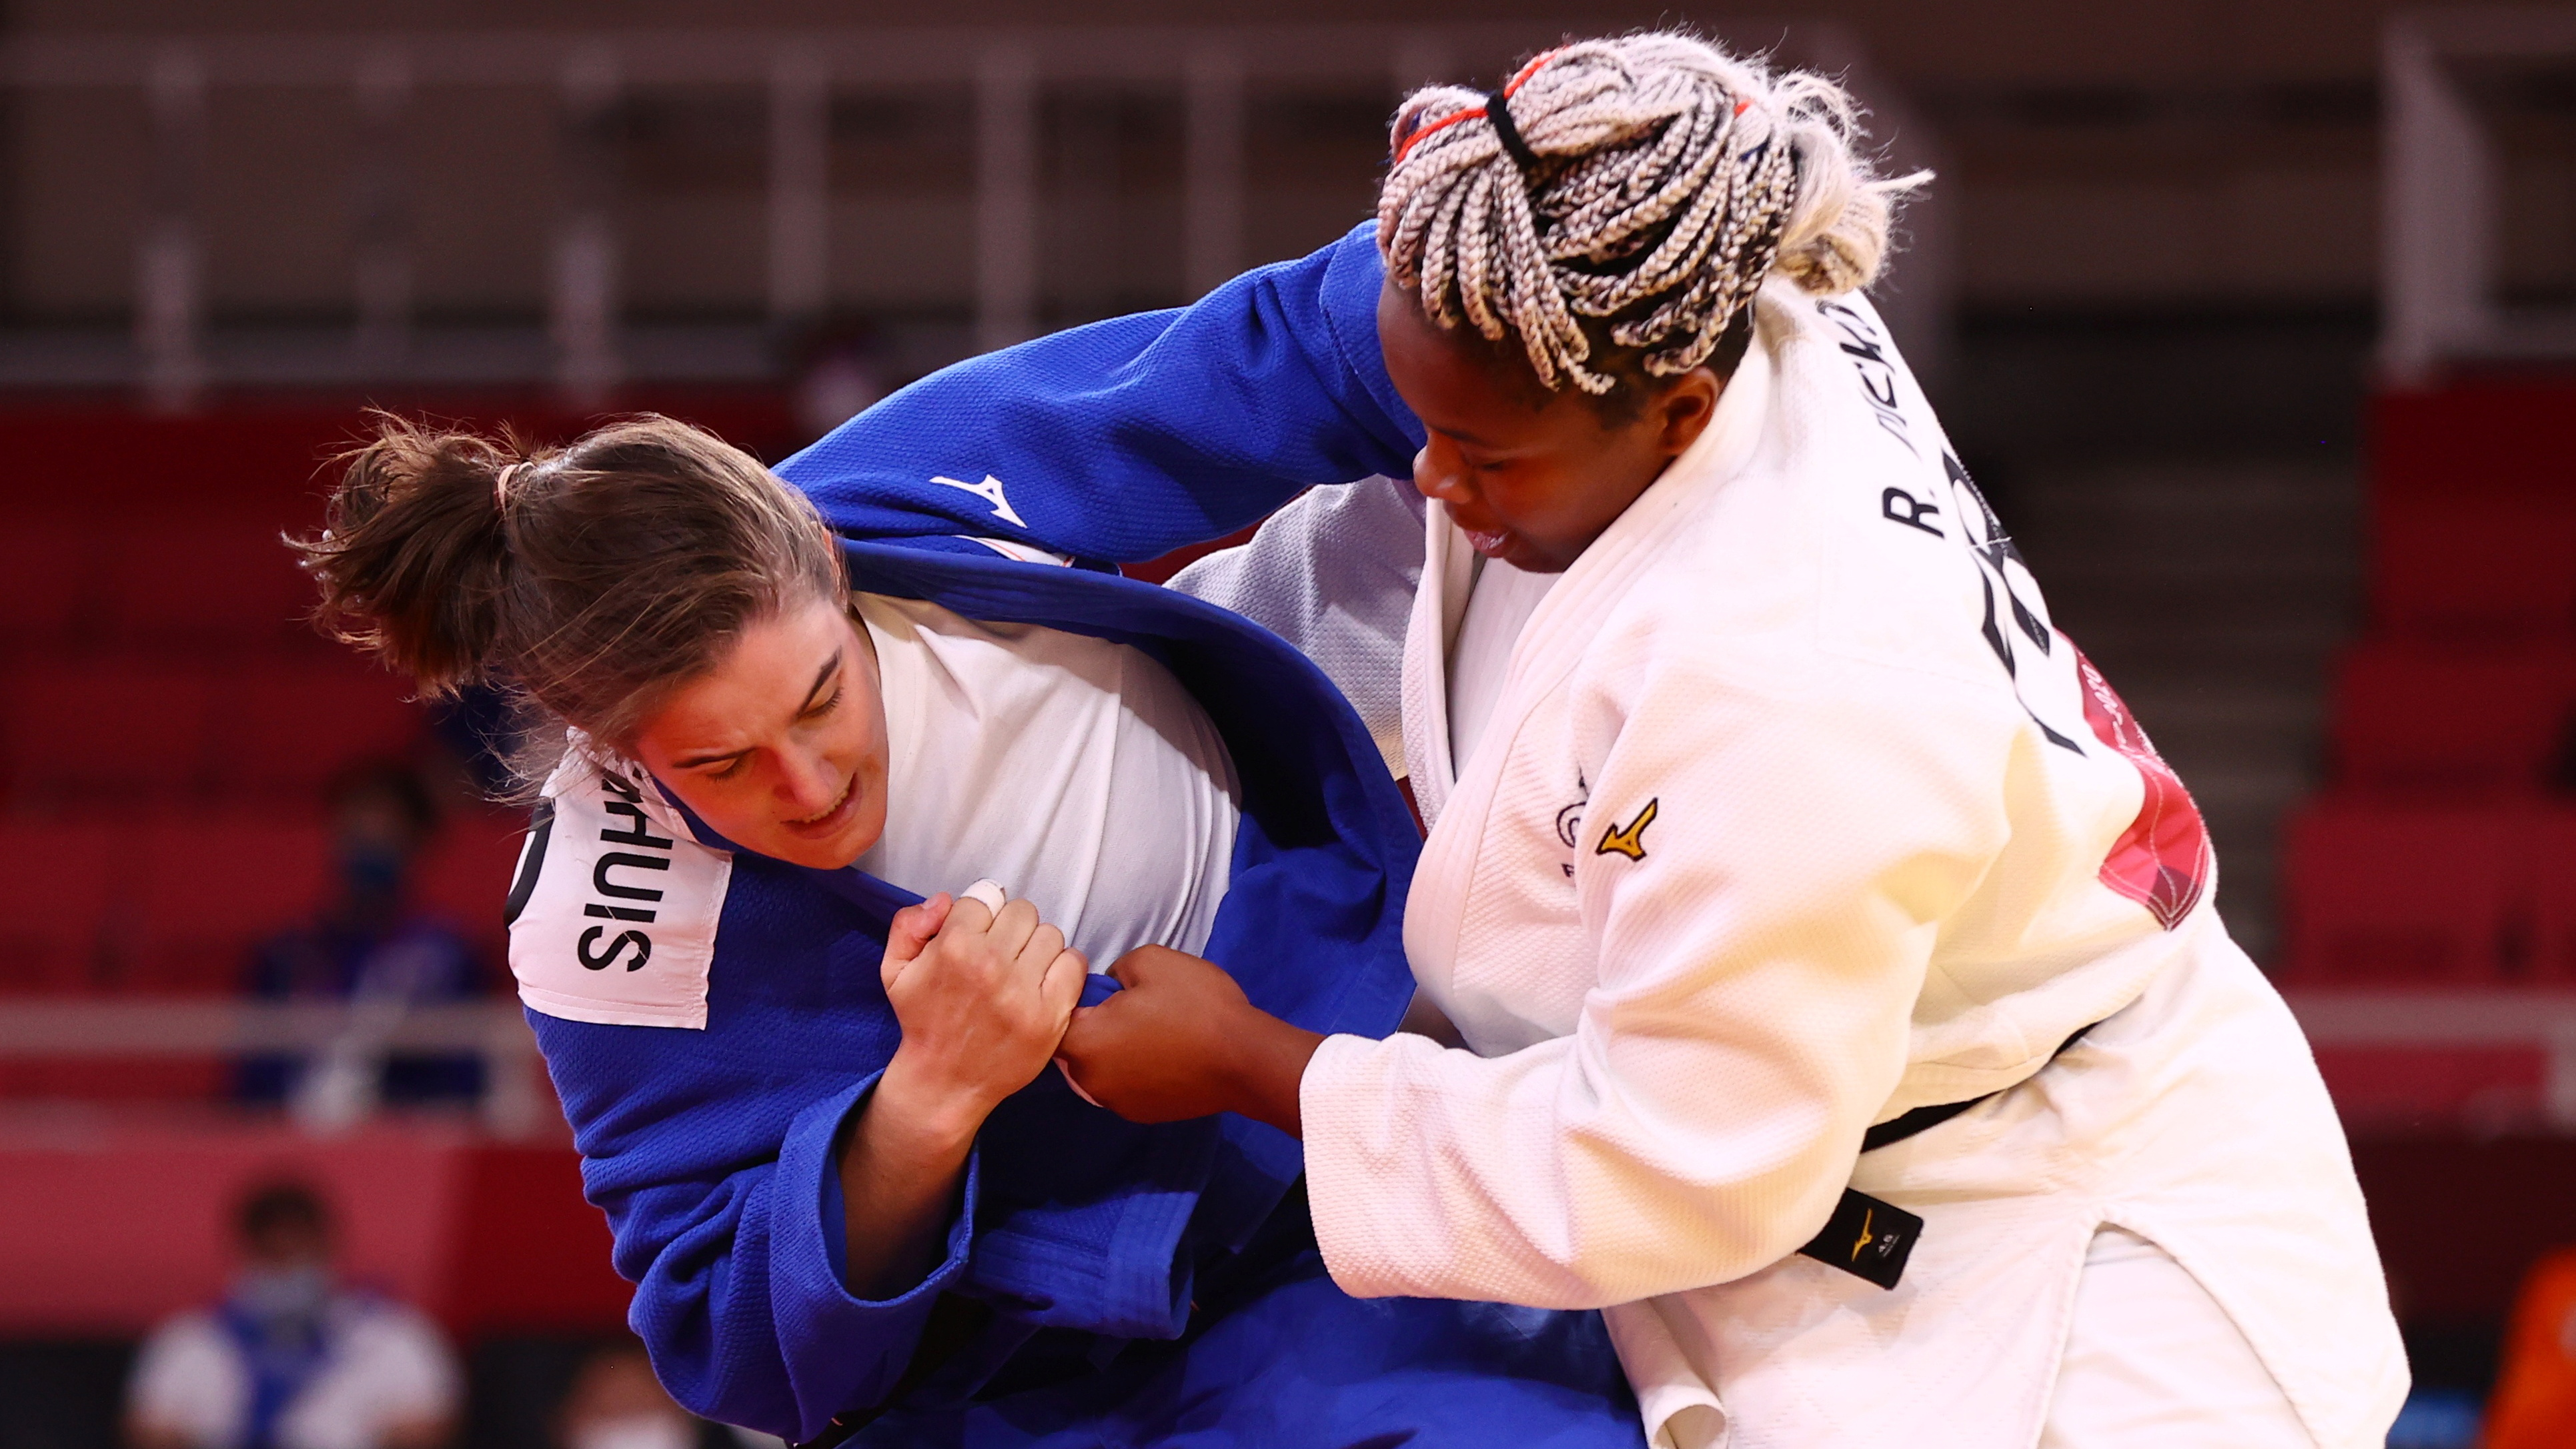 Tokyo 2020 Olympics - Judo - Mixed Team - Semifinal - Nippon Budokan - Tokyo, Japan - July 31, 2021. Romane Dicko of France in action against Guusje Steenhuis of the Netherlands REUTERS/Sergio Perez